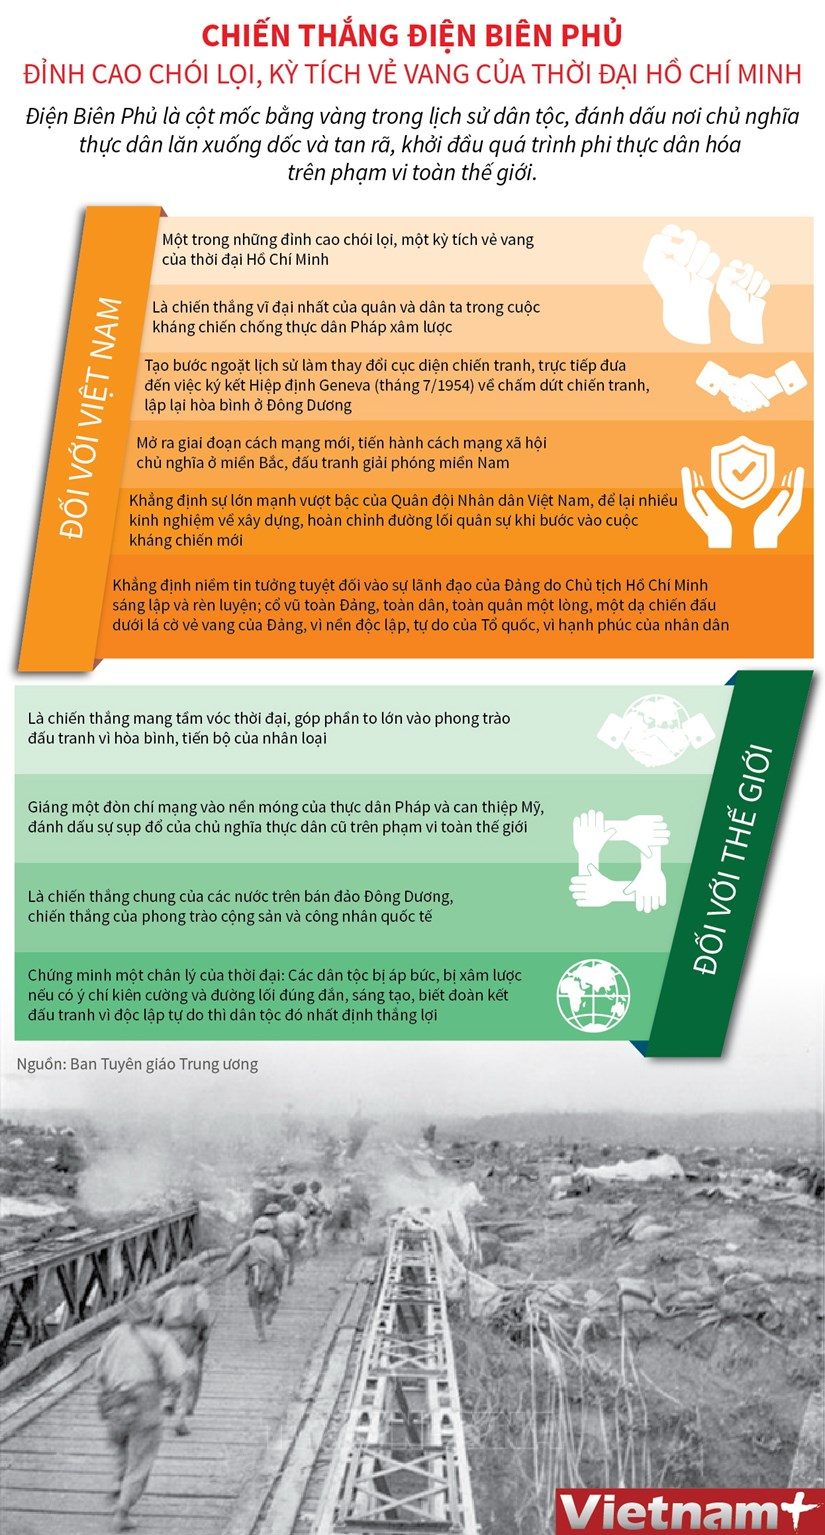 [Infographics] Chien thang Dien Bien Phu: Dinh cao choi loi hinh anh 1